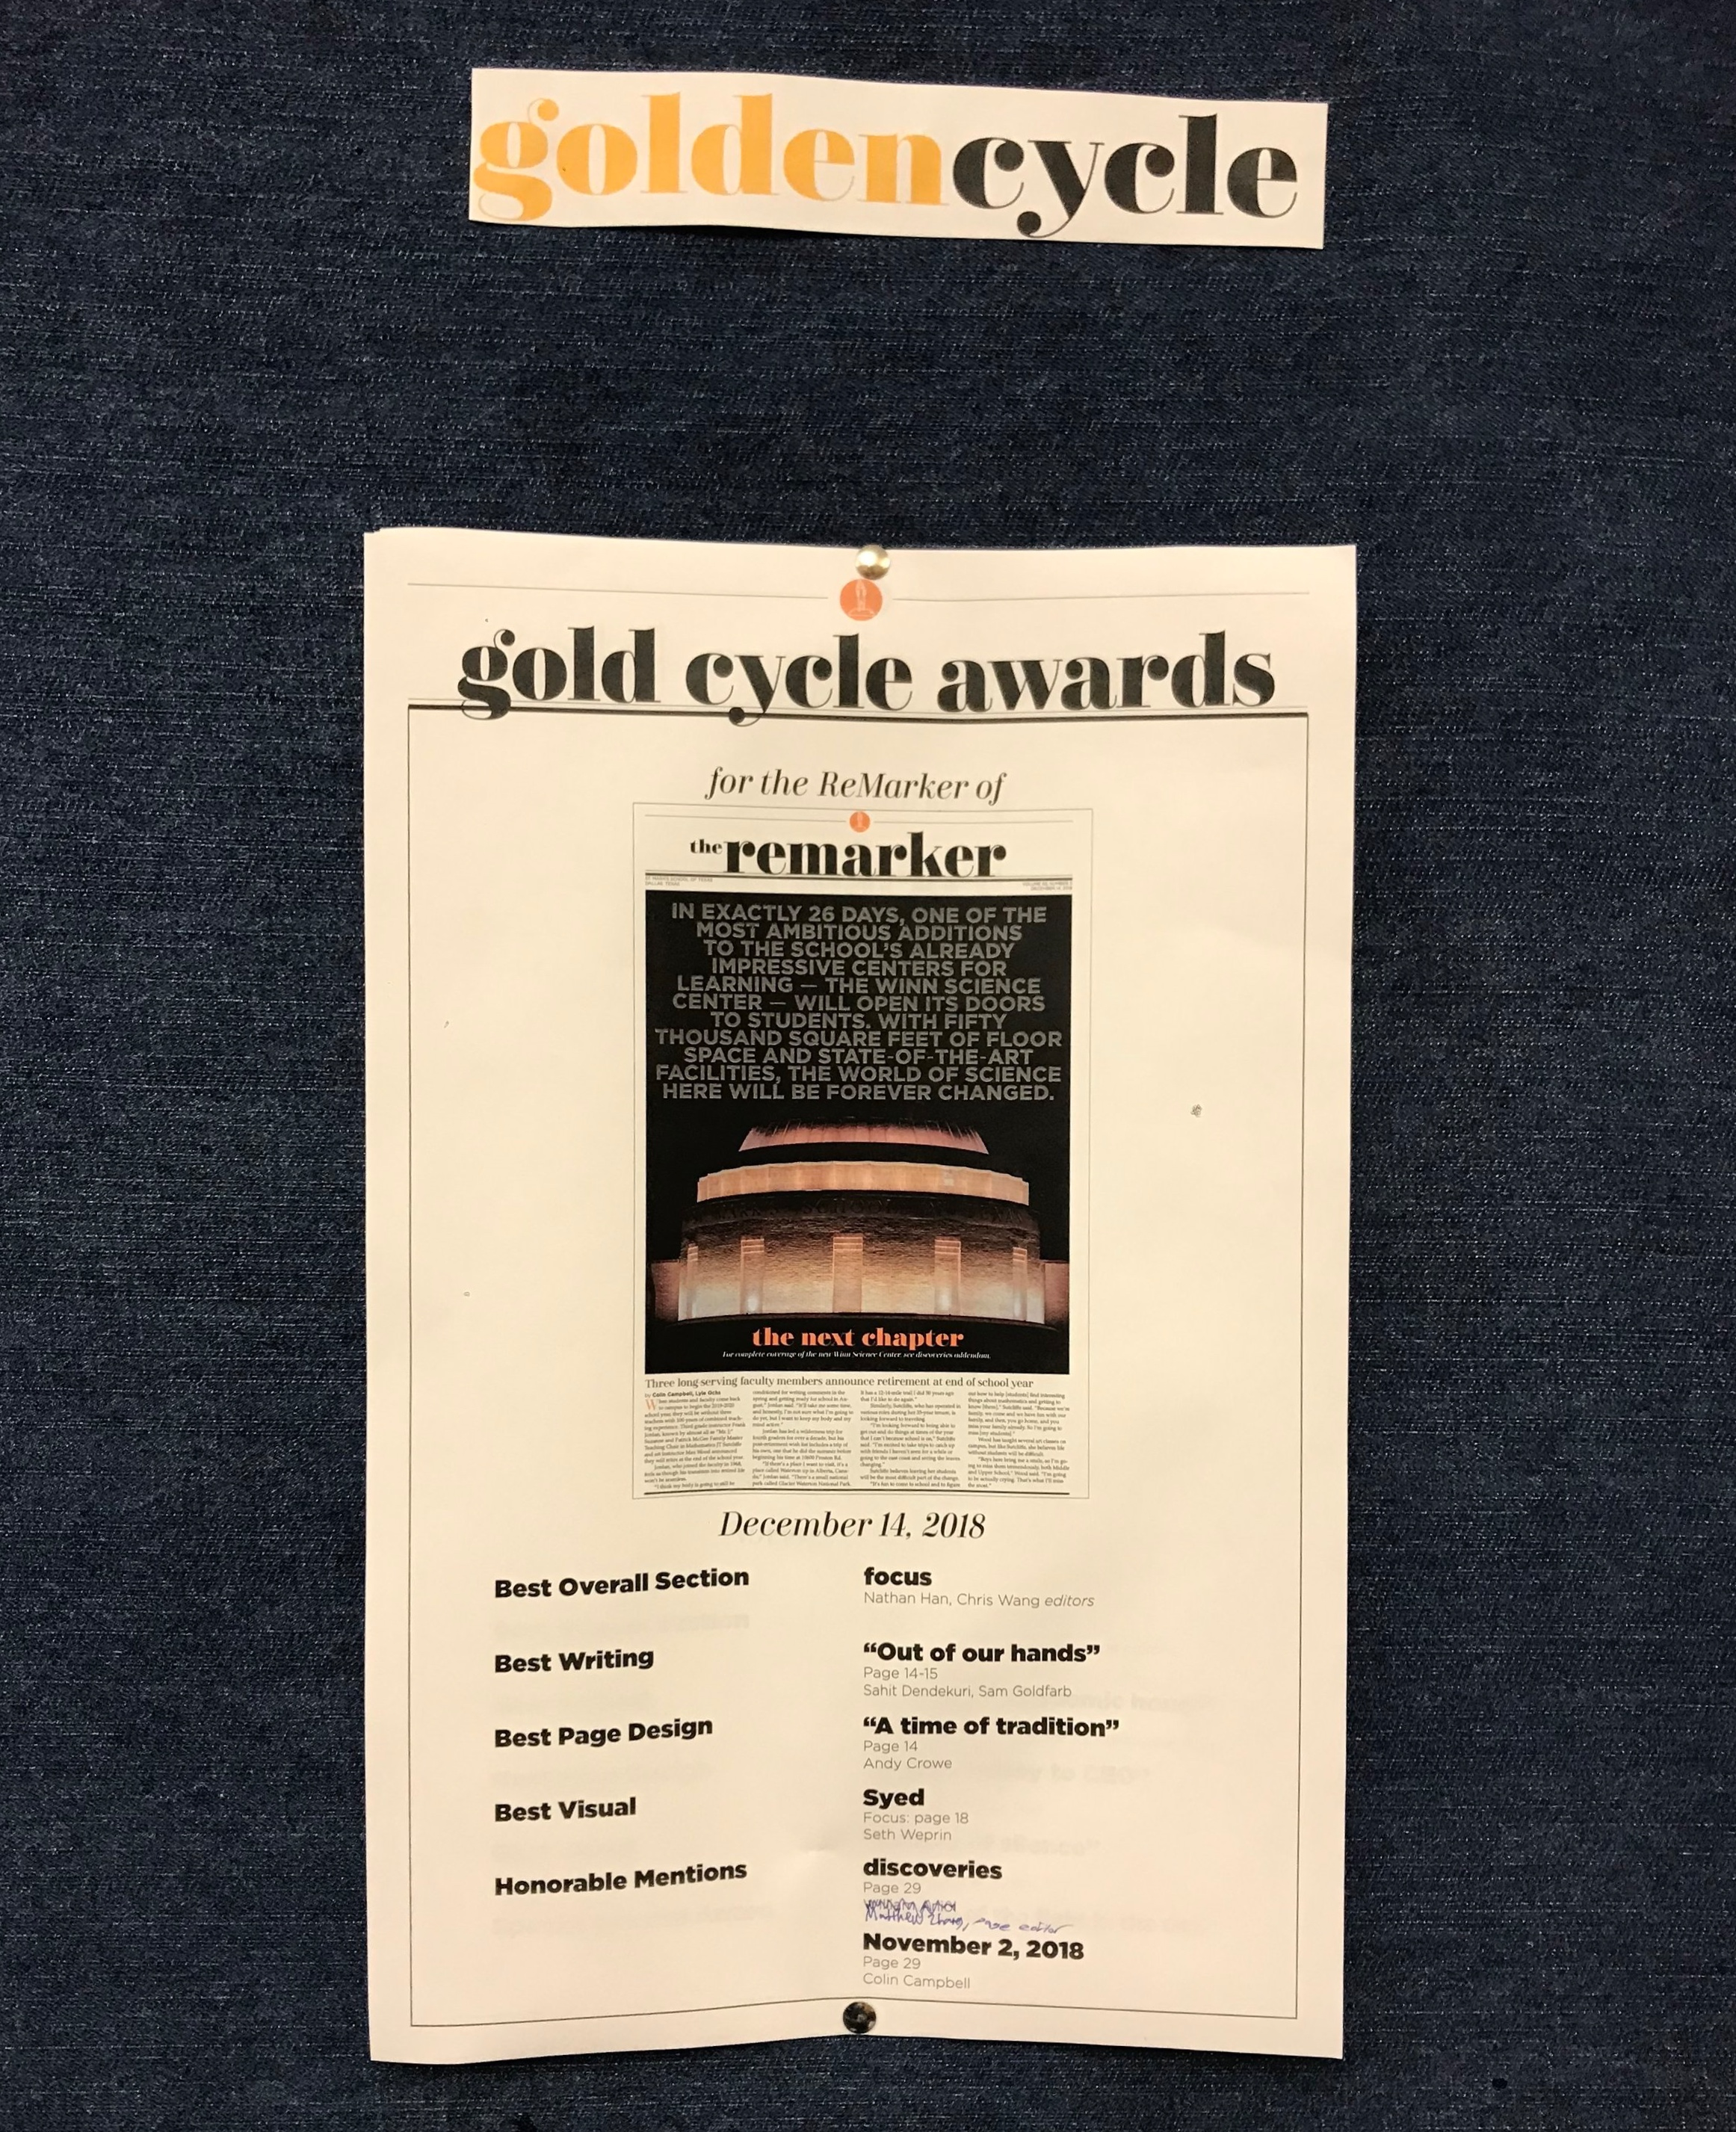 The Golden Cycle Awards sheet from the December cycle.